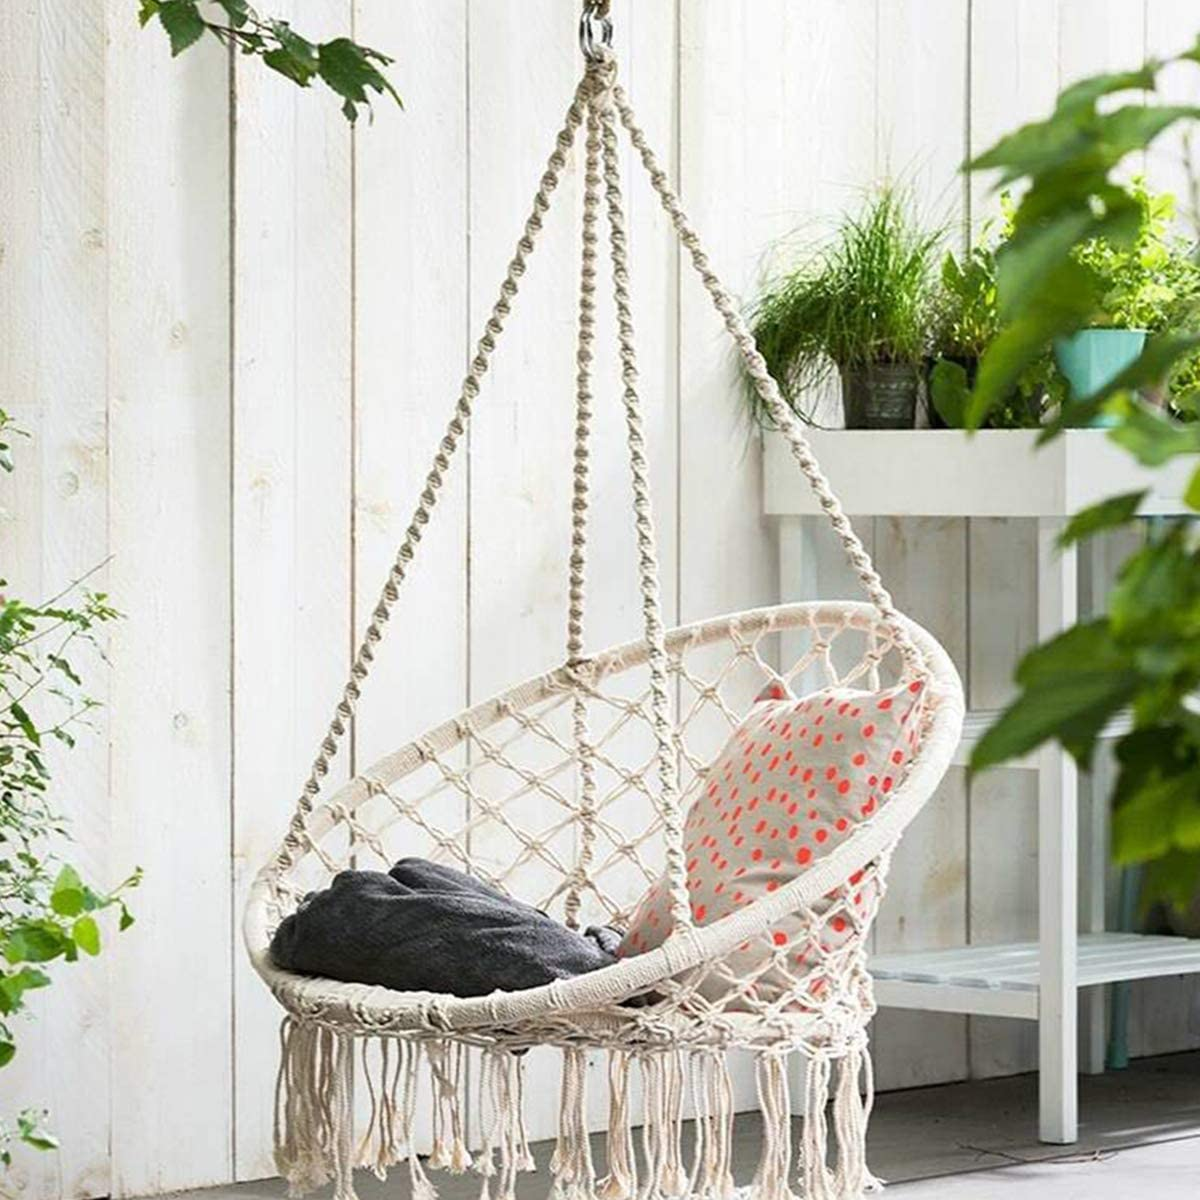 Amazon Com Kingso Hammock Chair Macrame Swing Handmade Knitted Hanging Cotton Rope Chair For Indoor Outdoor Home Patio Deck Yard Garden Reading Leisure 325 Pounds Capacity Beige Garden Outdoor